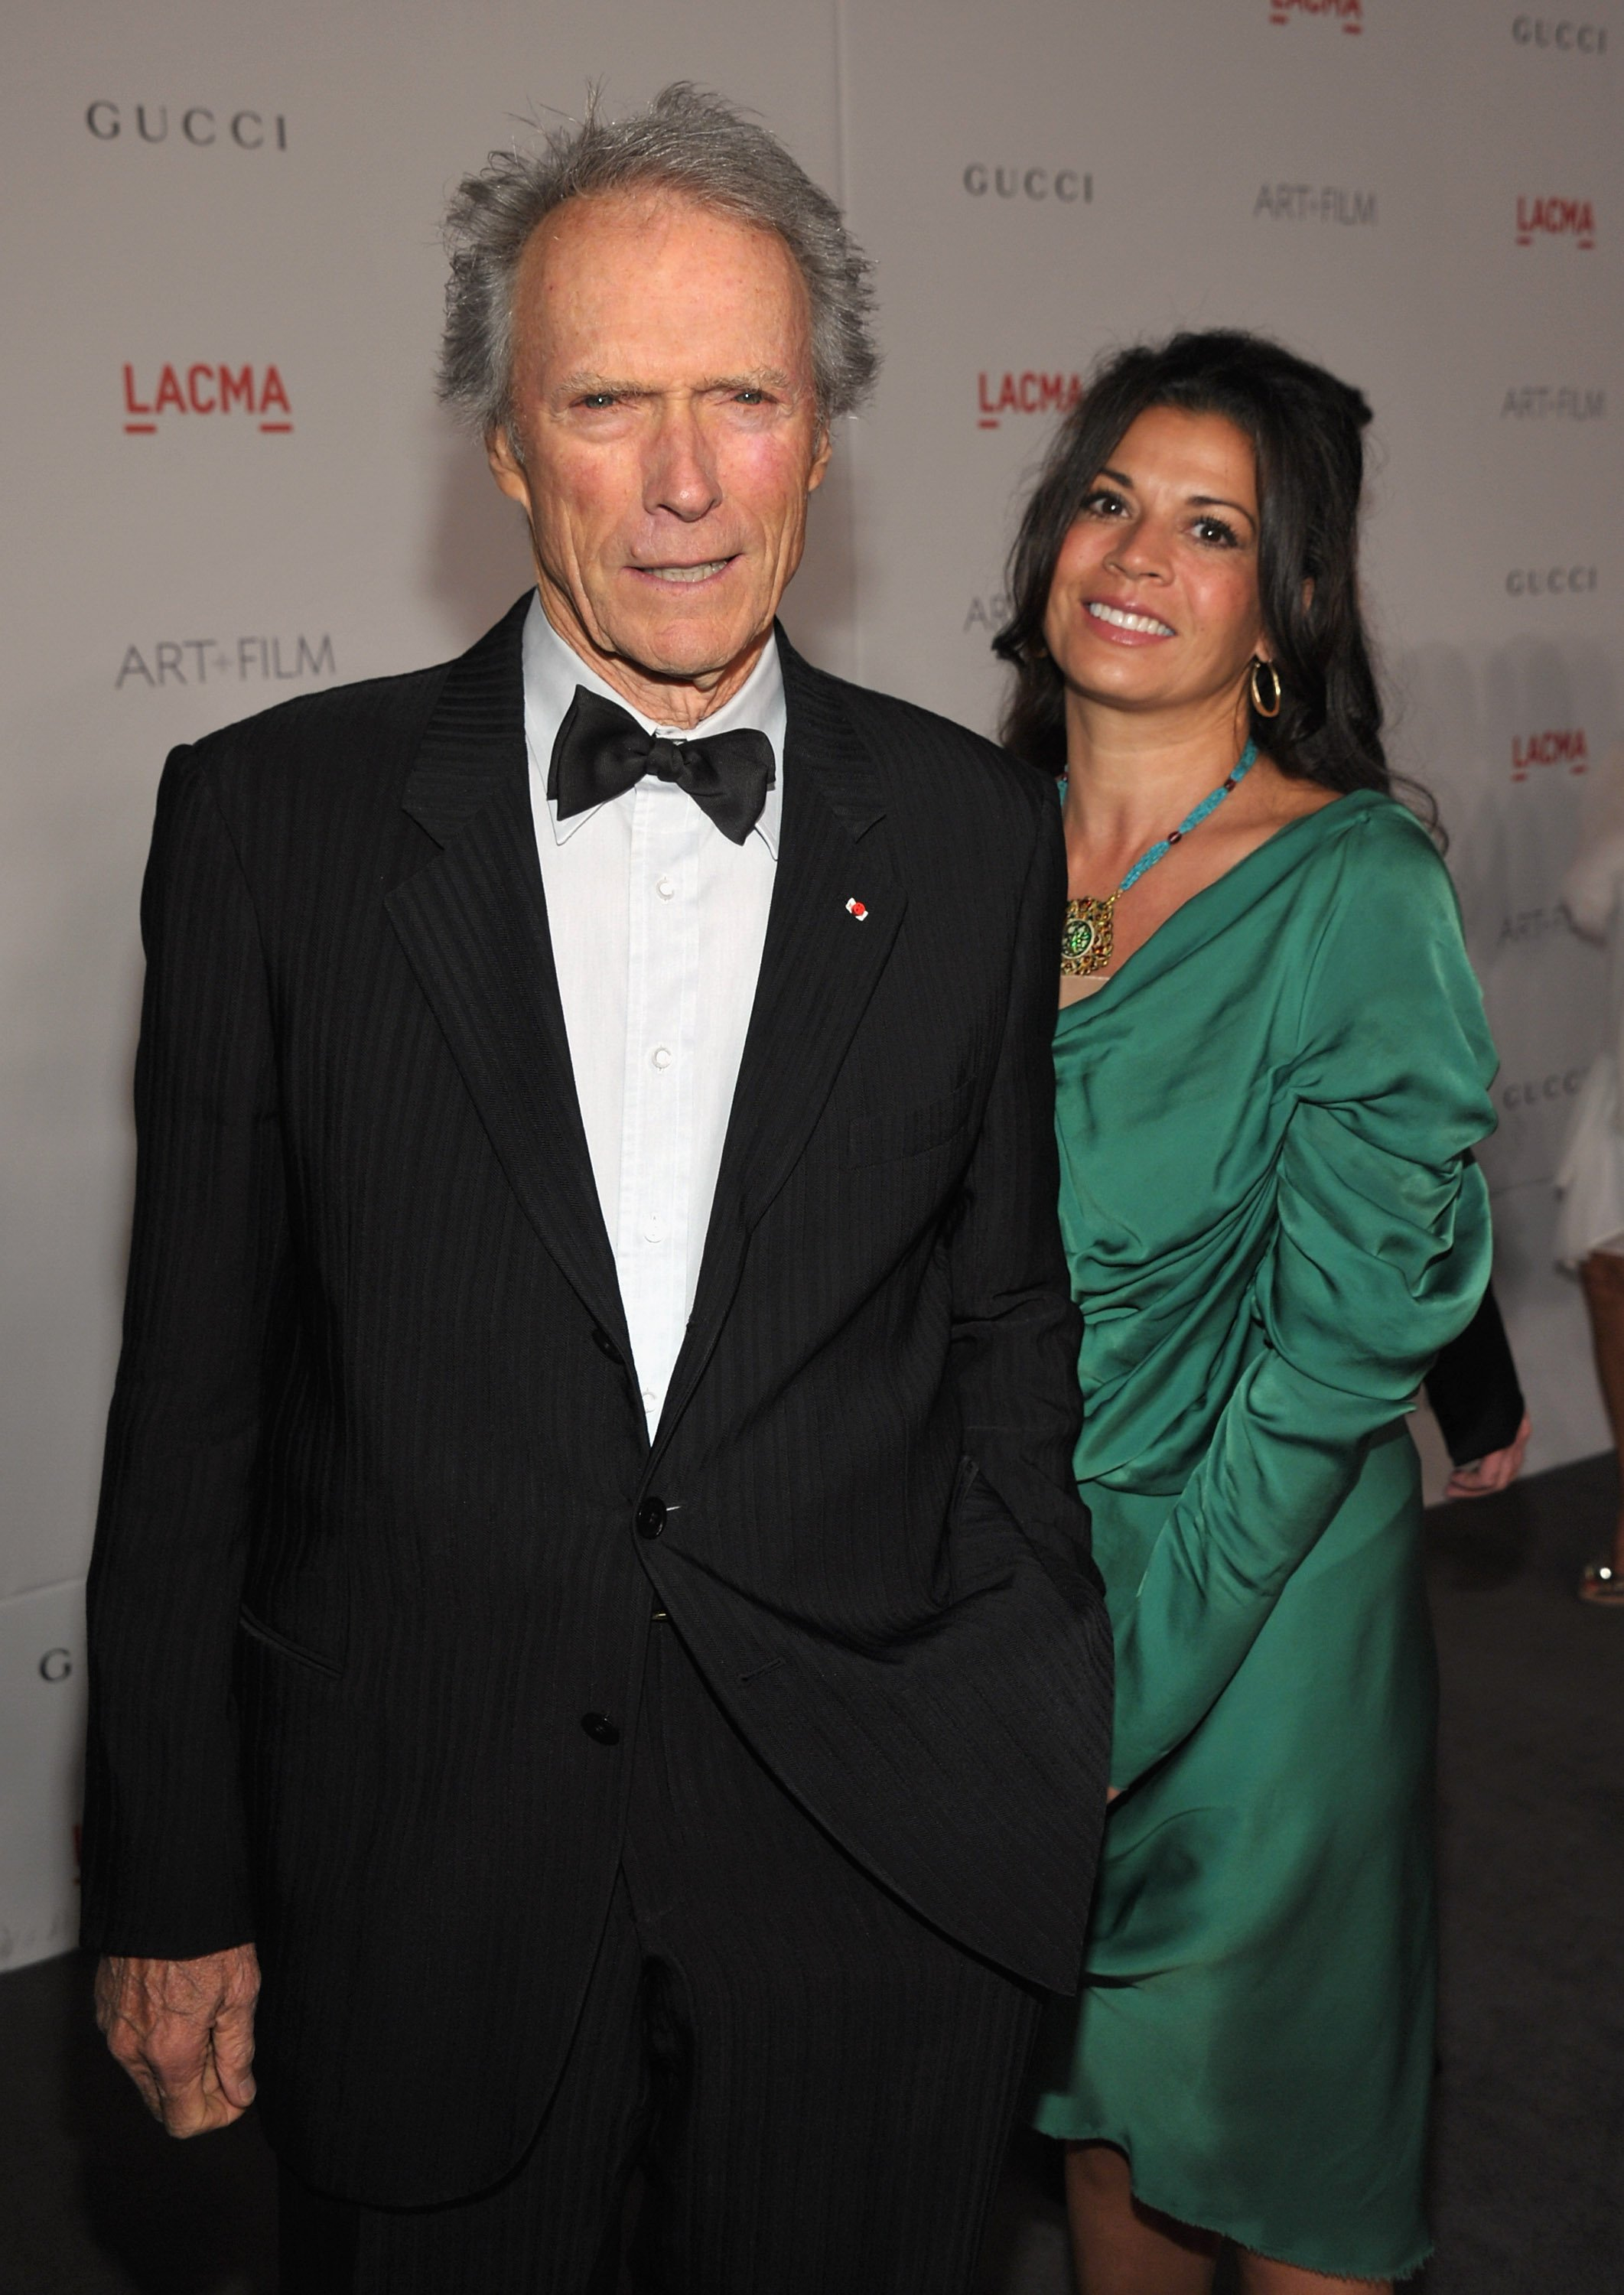 Clint Eastwood and wife Dina Eastwood attend LACMA Art + Film Gala Honoring Clint Eastwood and John Baldessari at Los Angeles County Museum of Art on November 5, 2011 in Los Angeles, California | Photo: Getty Images